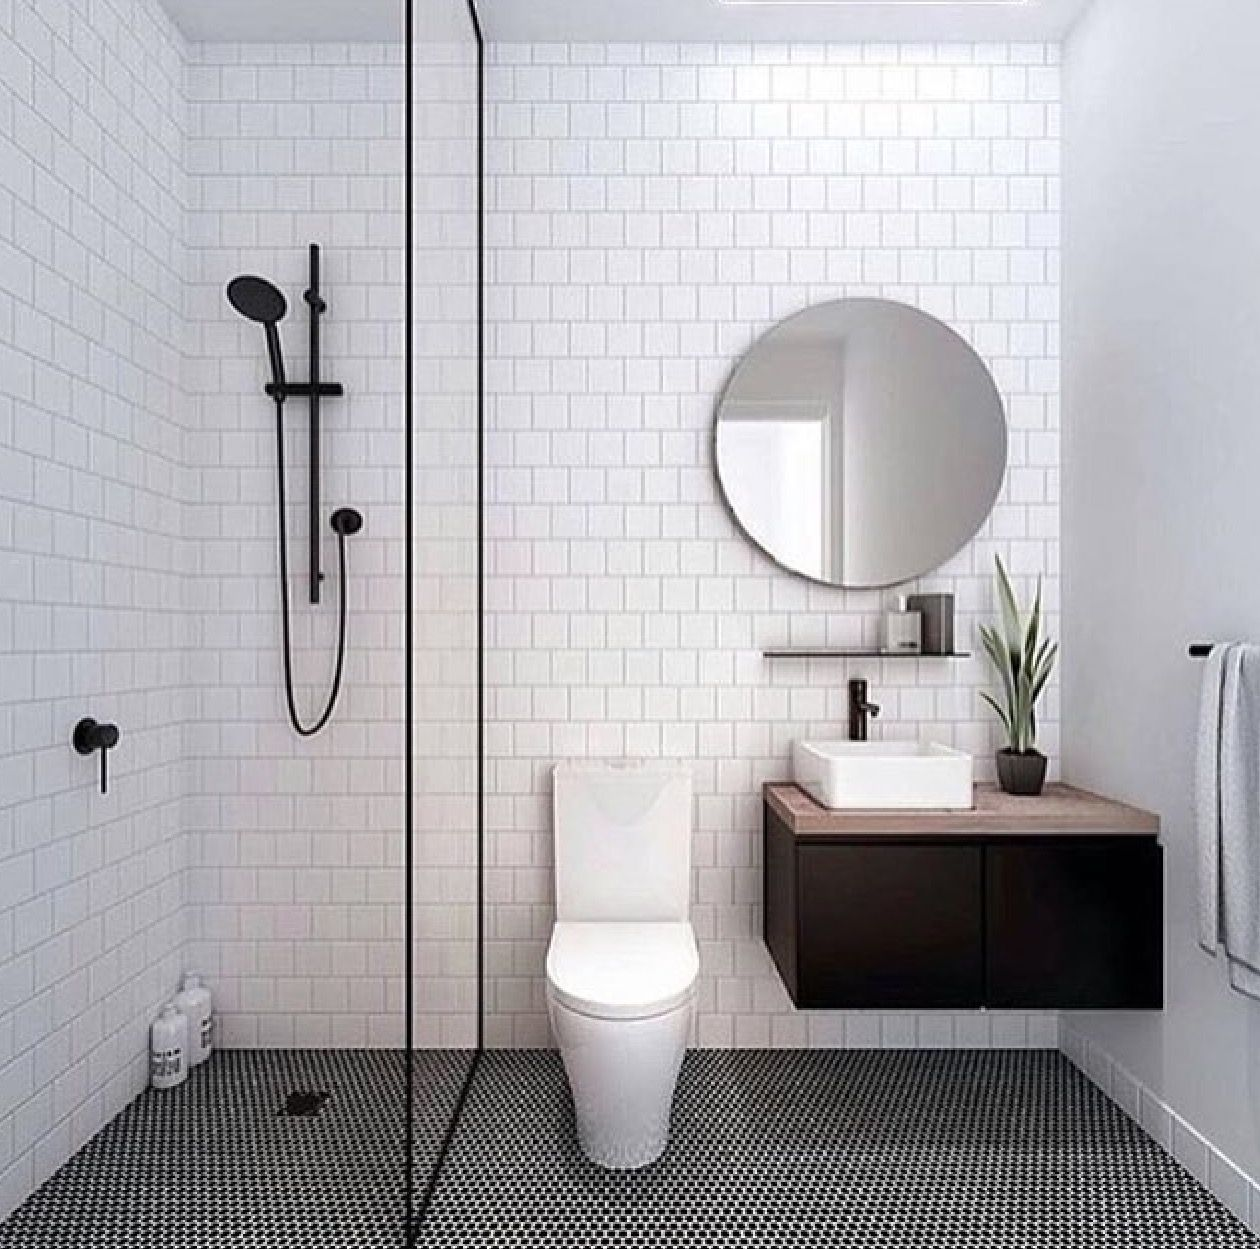 bathroom black & white | Bathrooms | Pinterest | Bathroom black ...